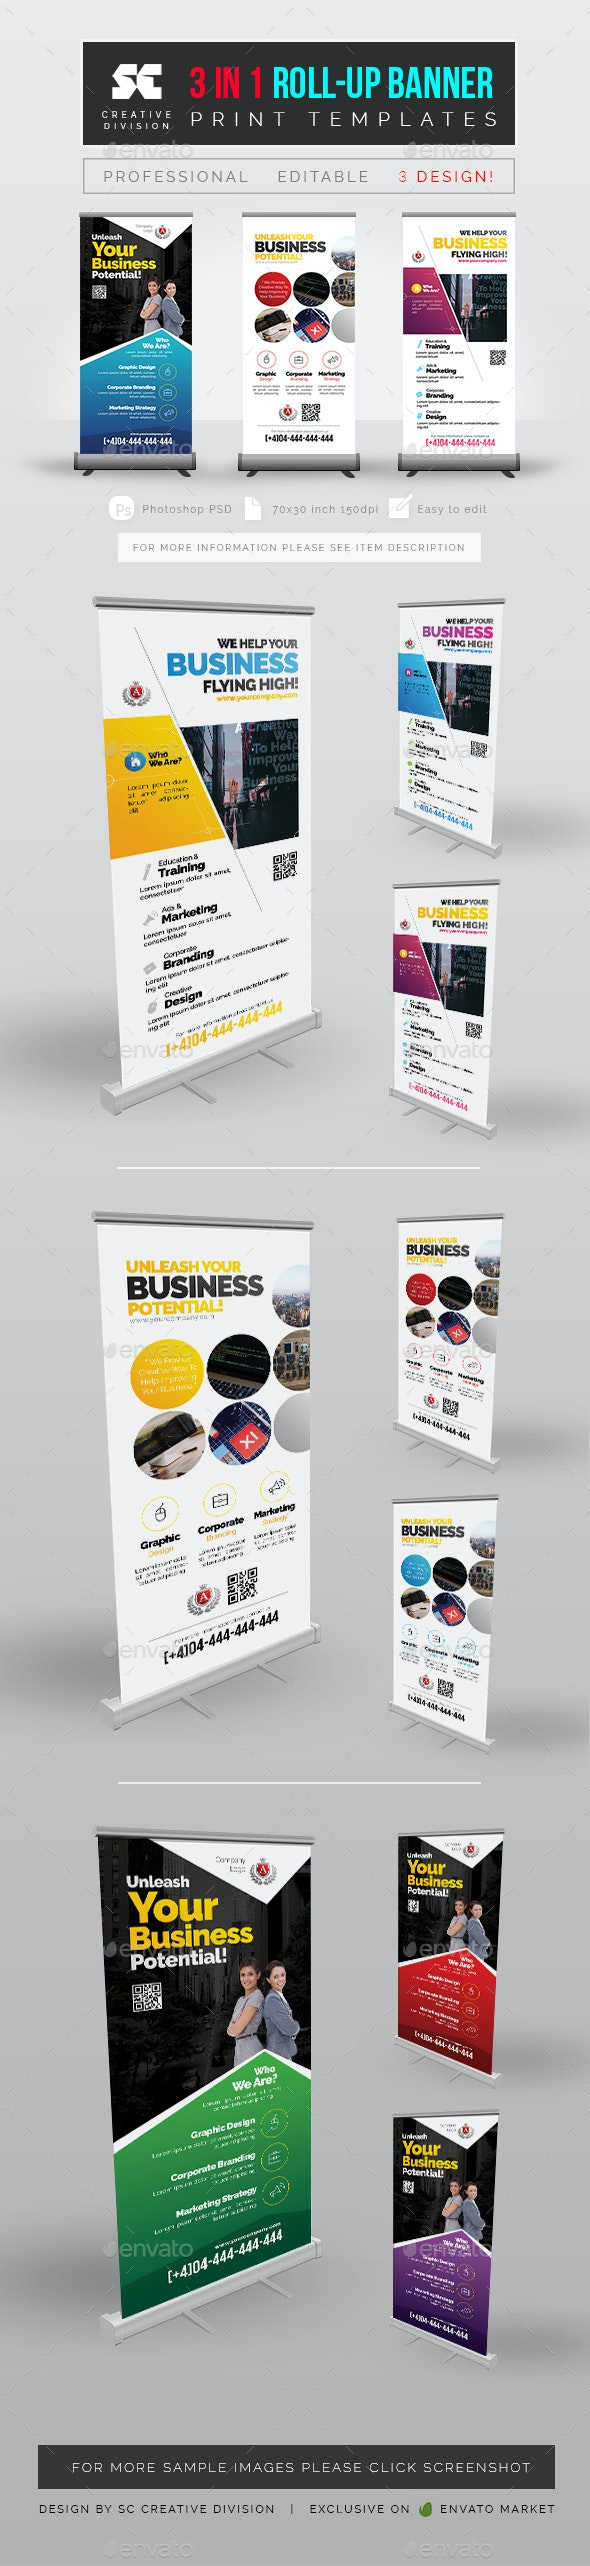 Multipurpose Roll Up Banner 3 In 1 - Signage Print Templates